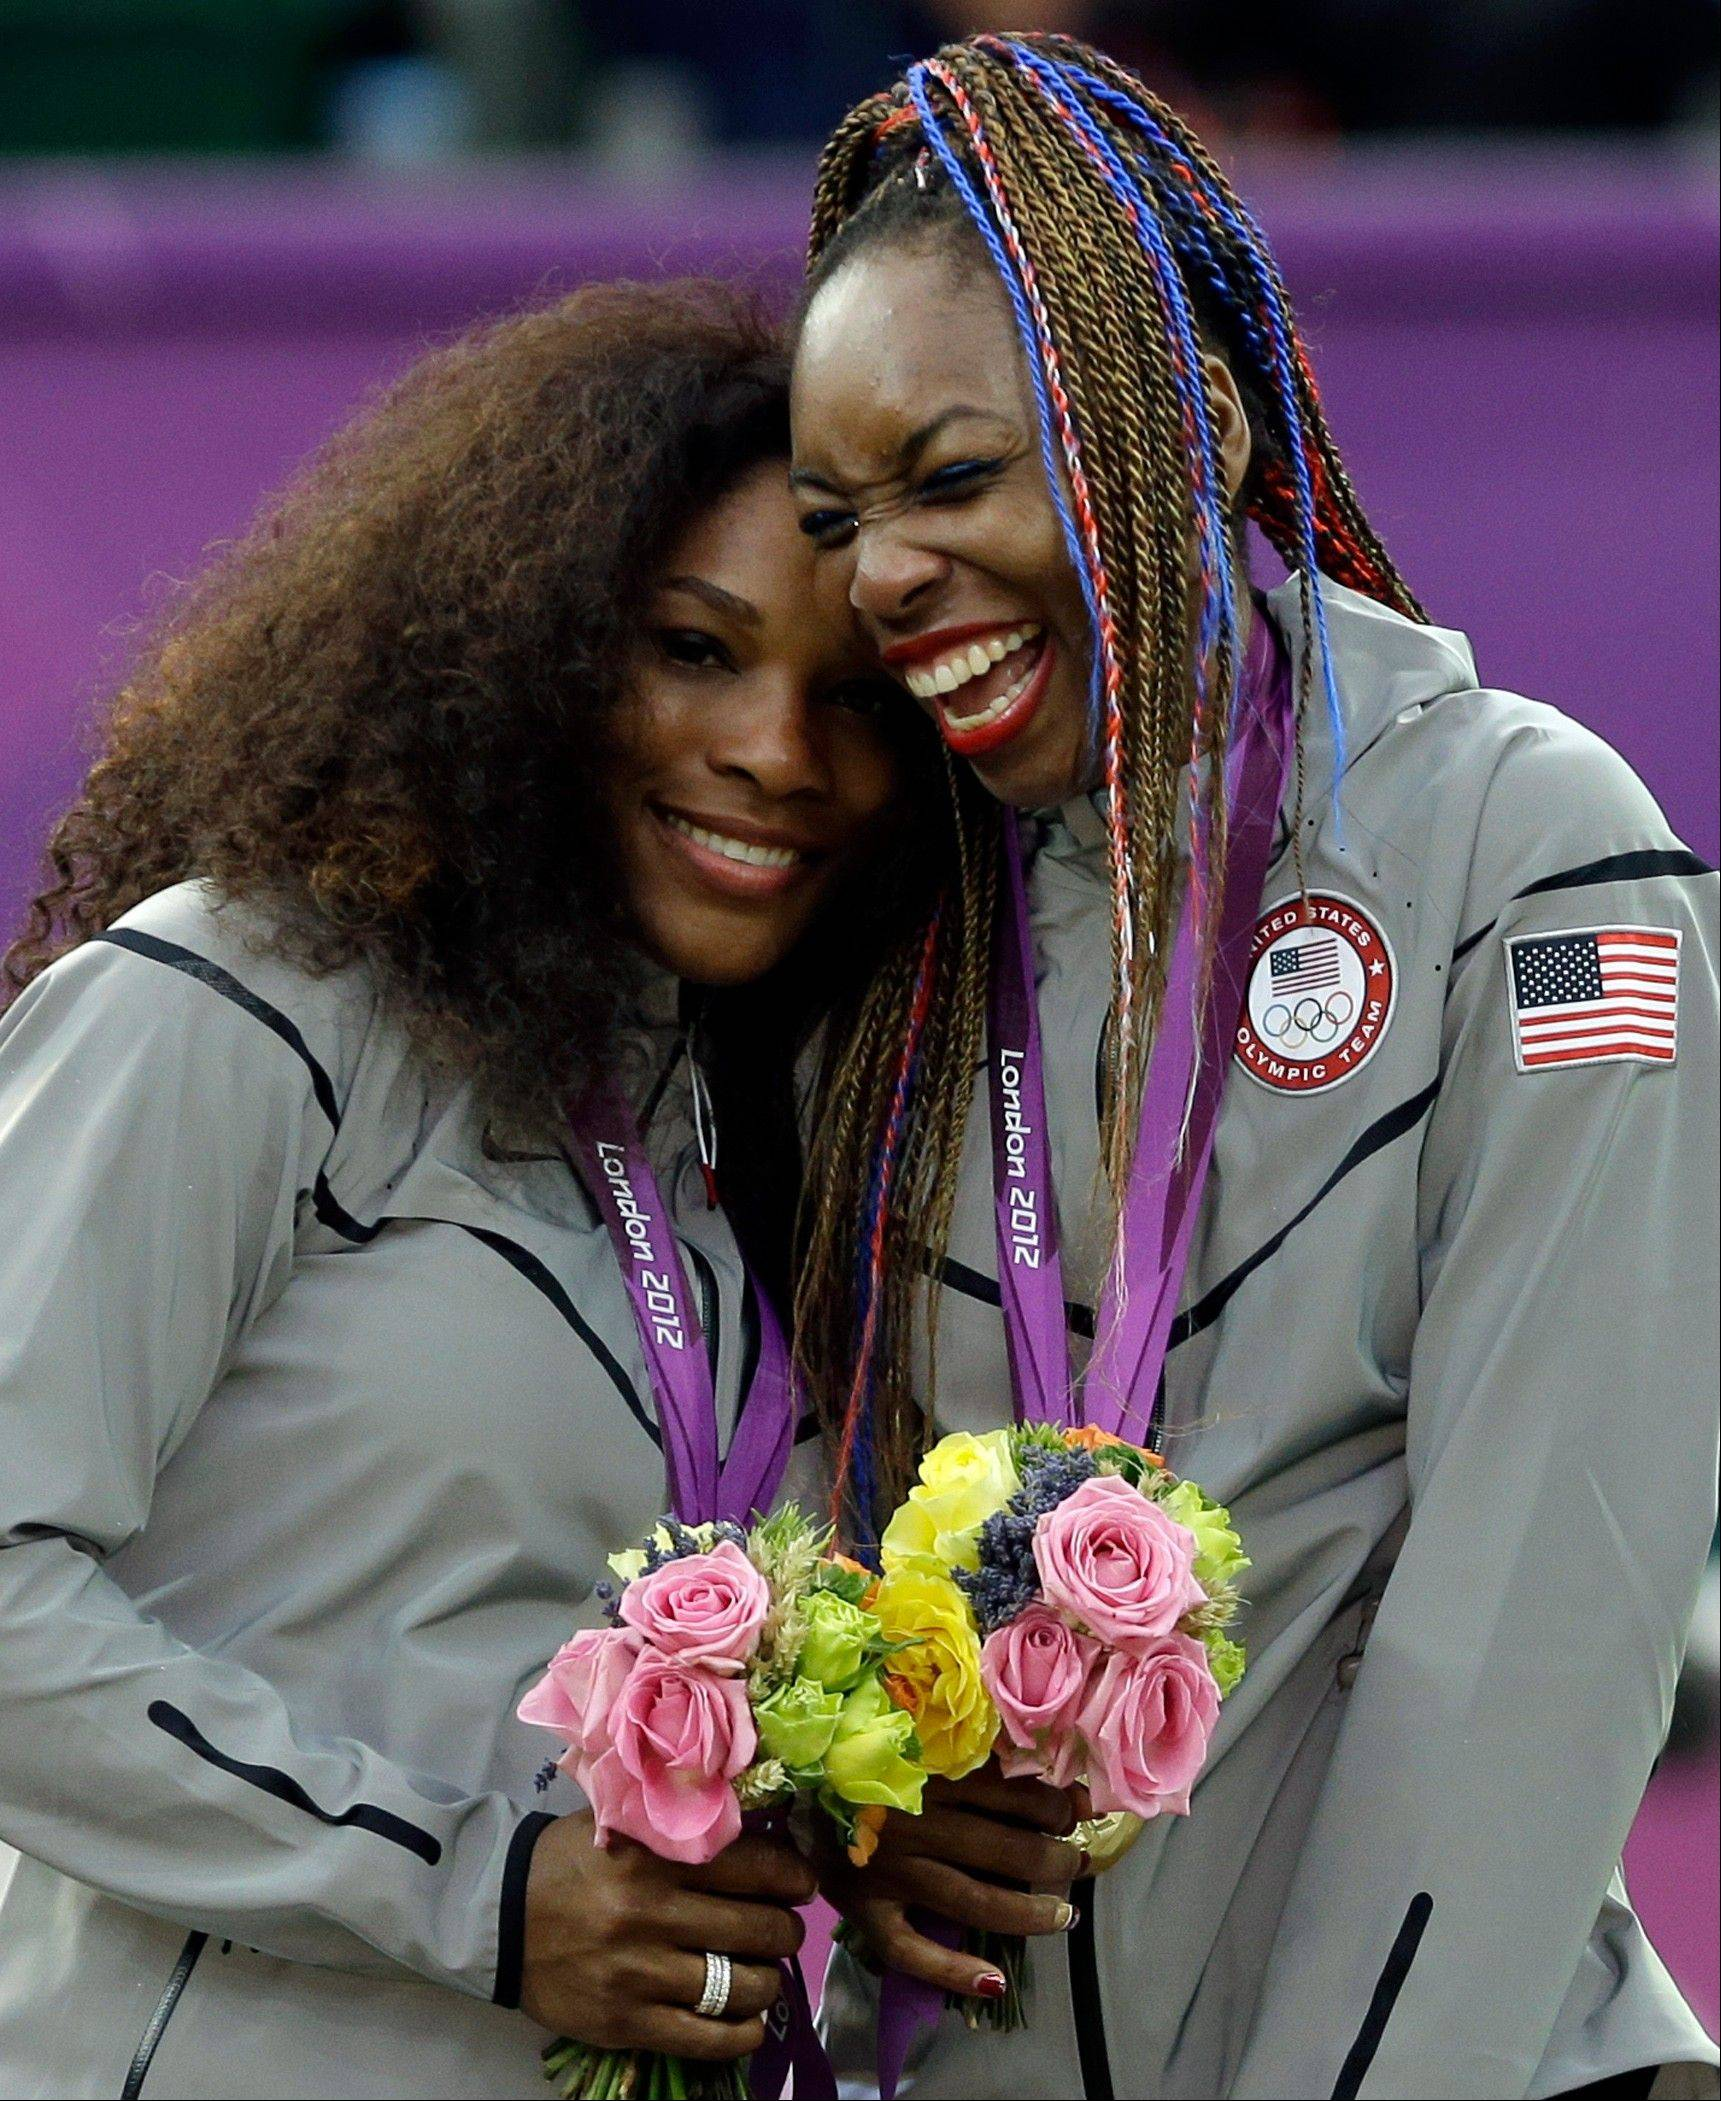 Serena Williams, left, and Venus Williams of the United States laugh together on the podium after receiving their gold medals in women's doubles at the All England Lawn Tennis Club in Wimbledon, London at the 2012 Summer Olympics, Sunday, Aug. 5, 2012.